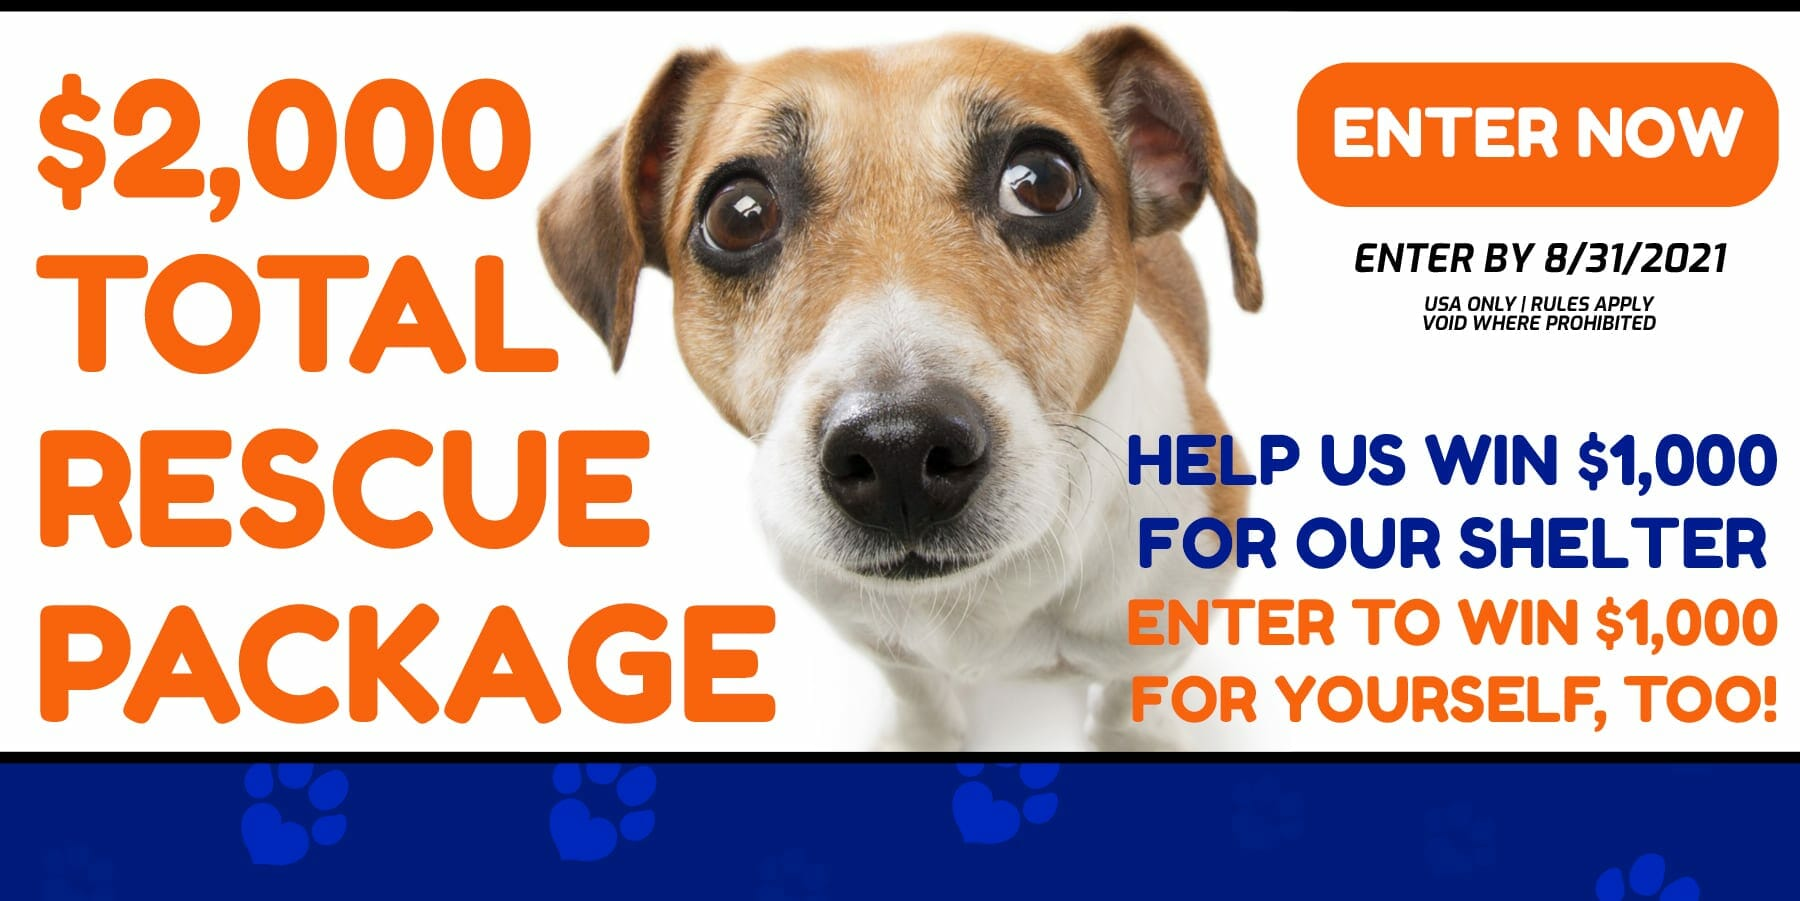 total animal adopt dog rescue shelter package